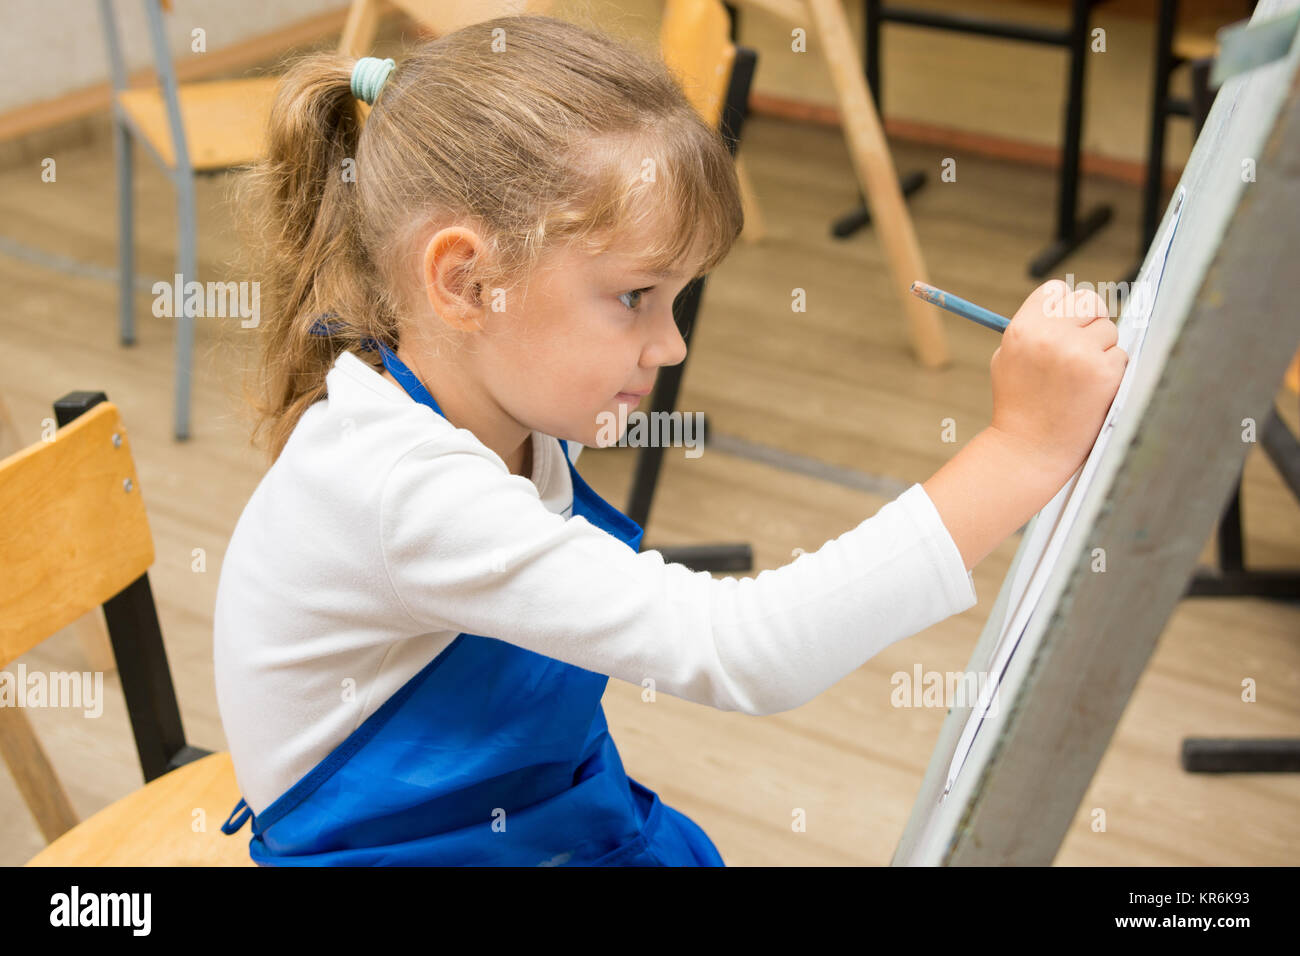 Five-year girl paints on an easel in the drawing lesson - Stock Image